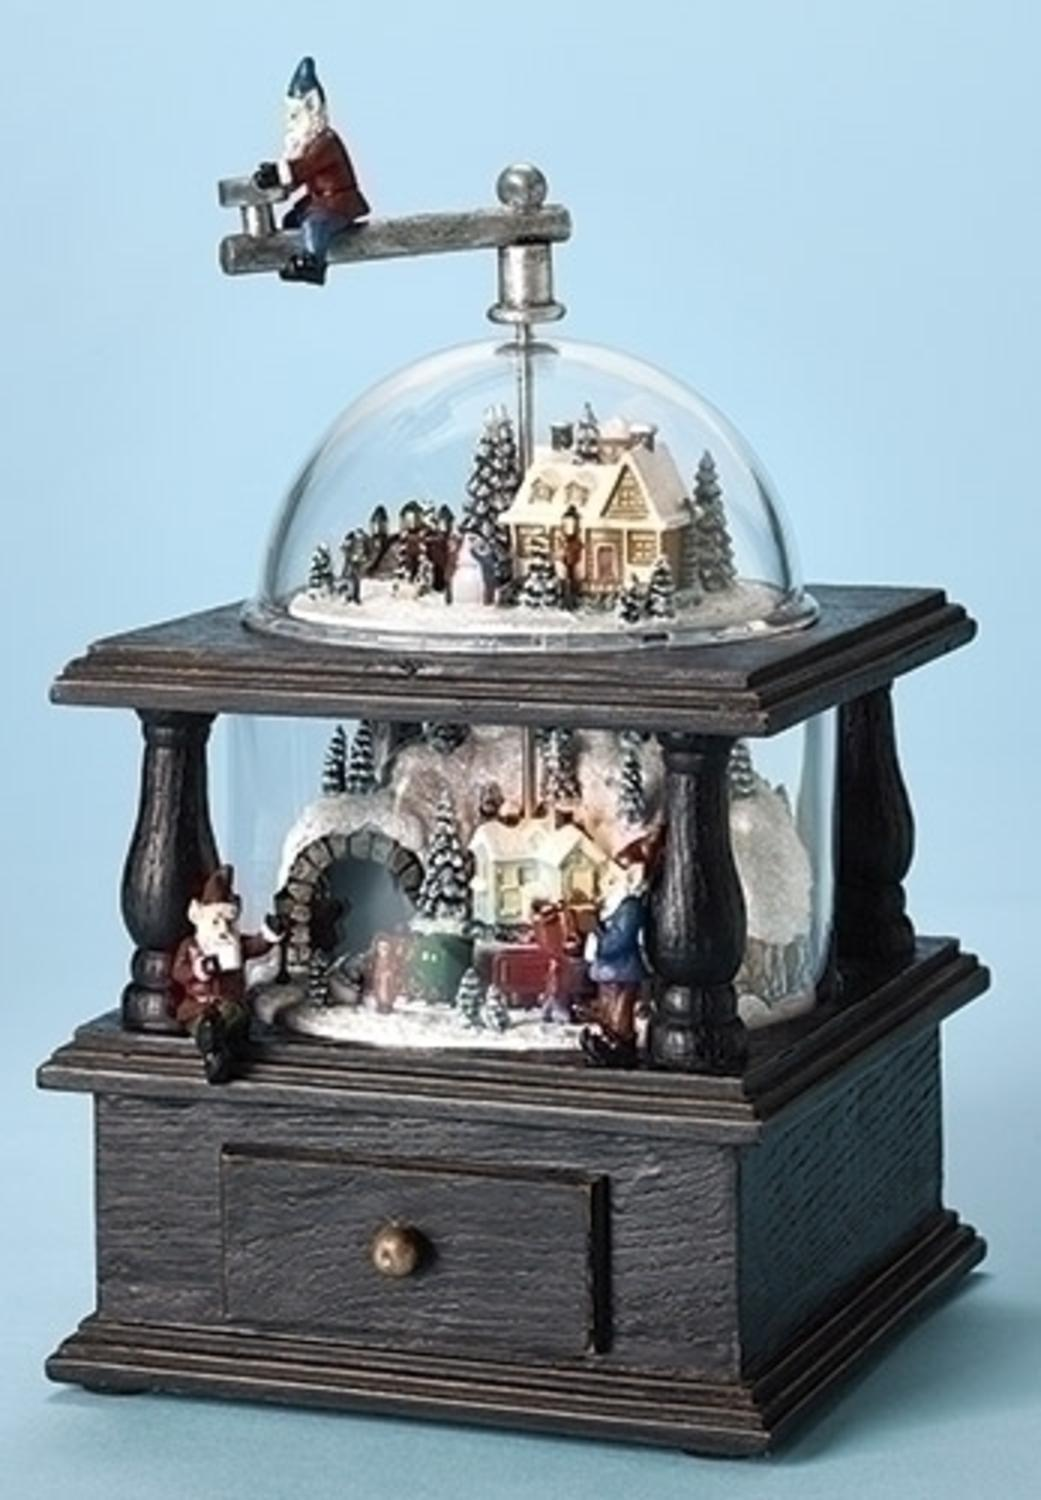 "10.25"" Amusements Lighted Musical Old Fashion Coffee Grinder Santa's Workshop Christmas Decoration by Roman"